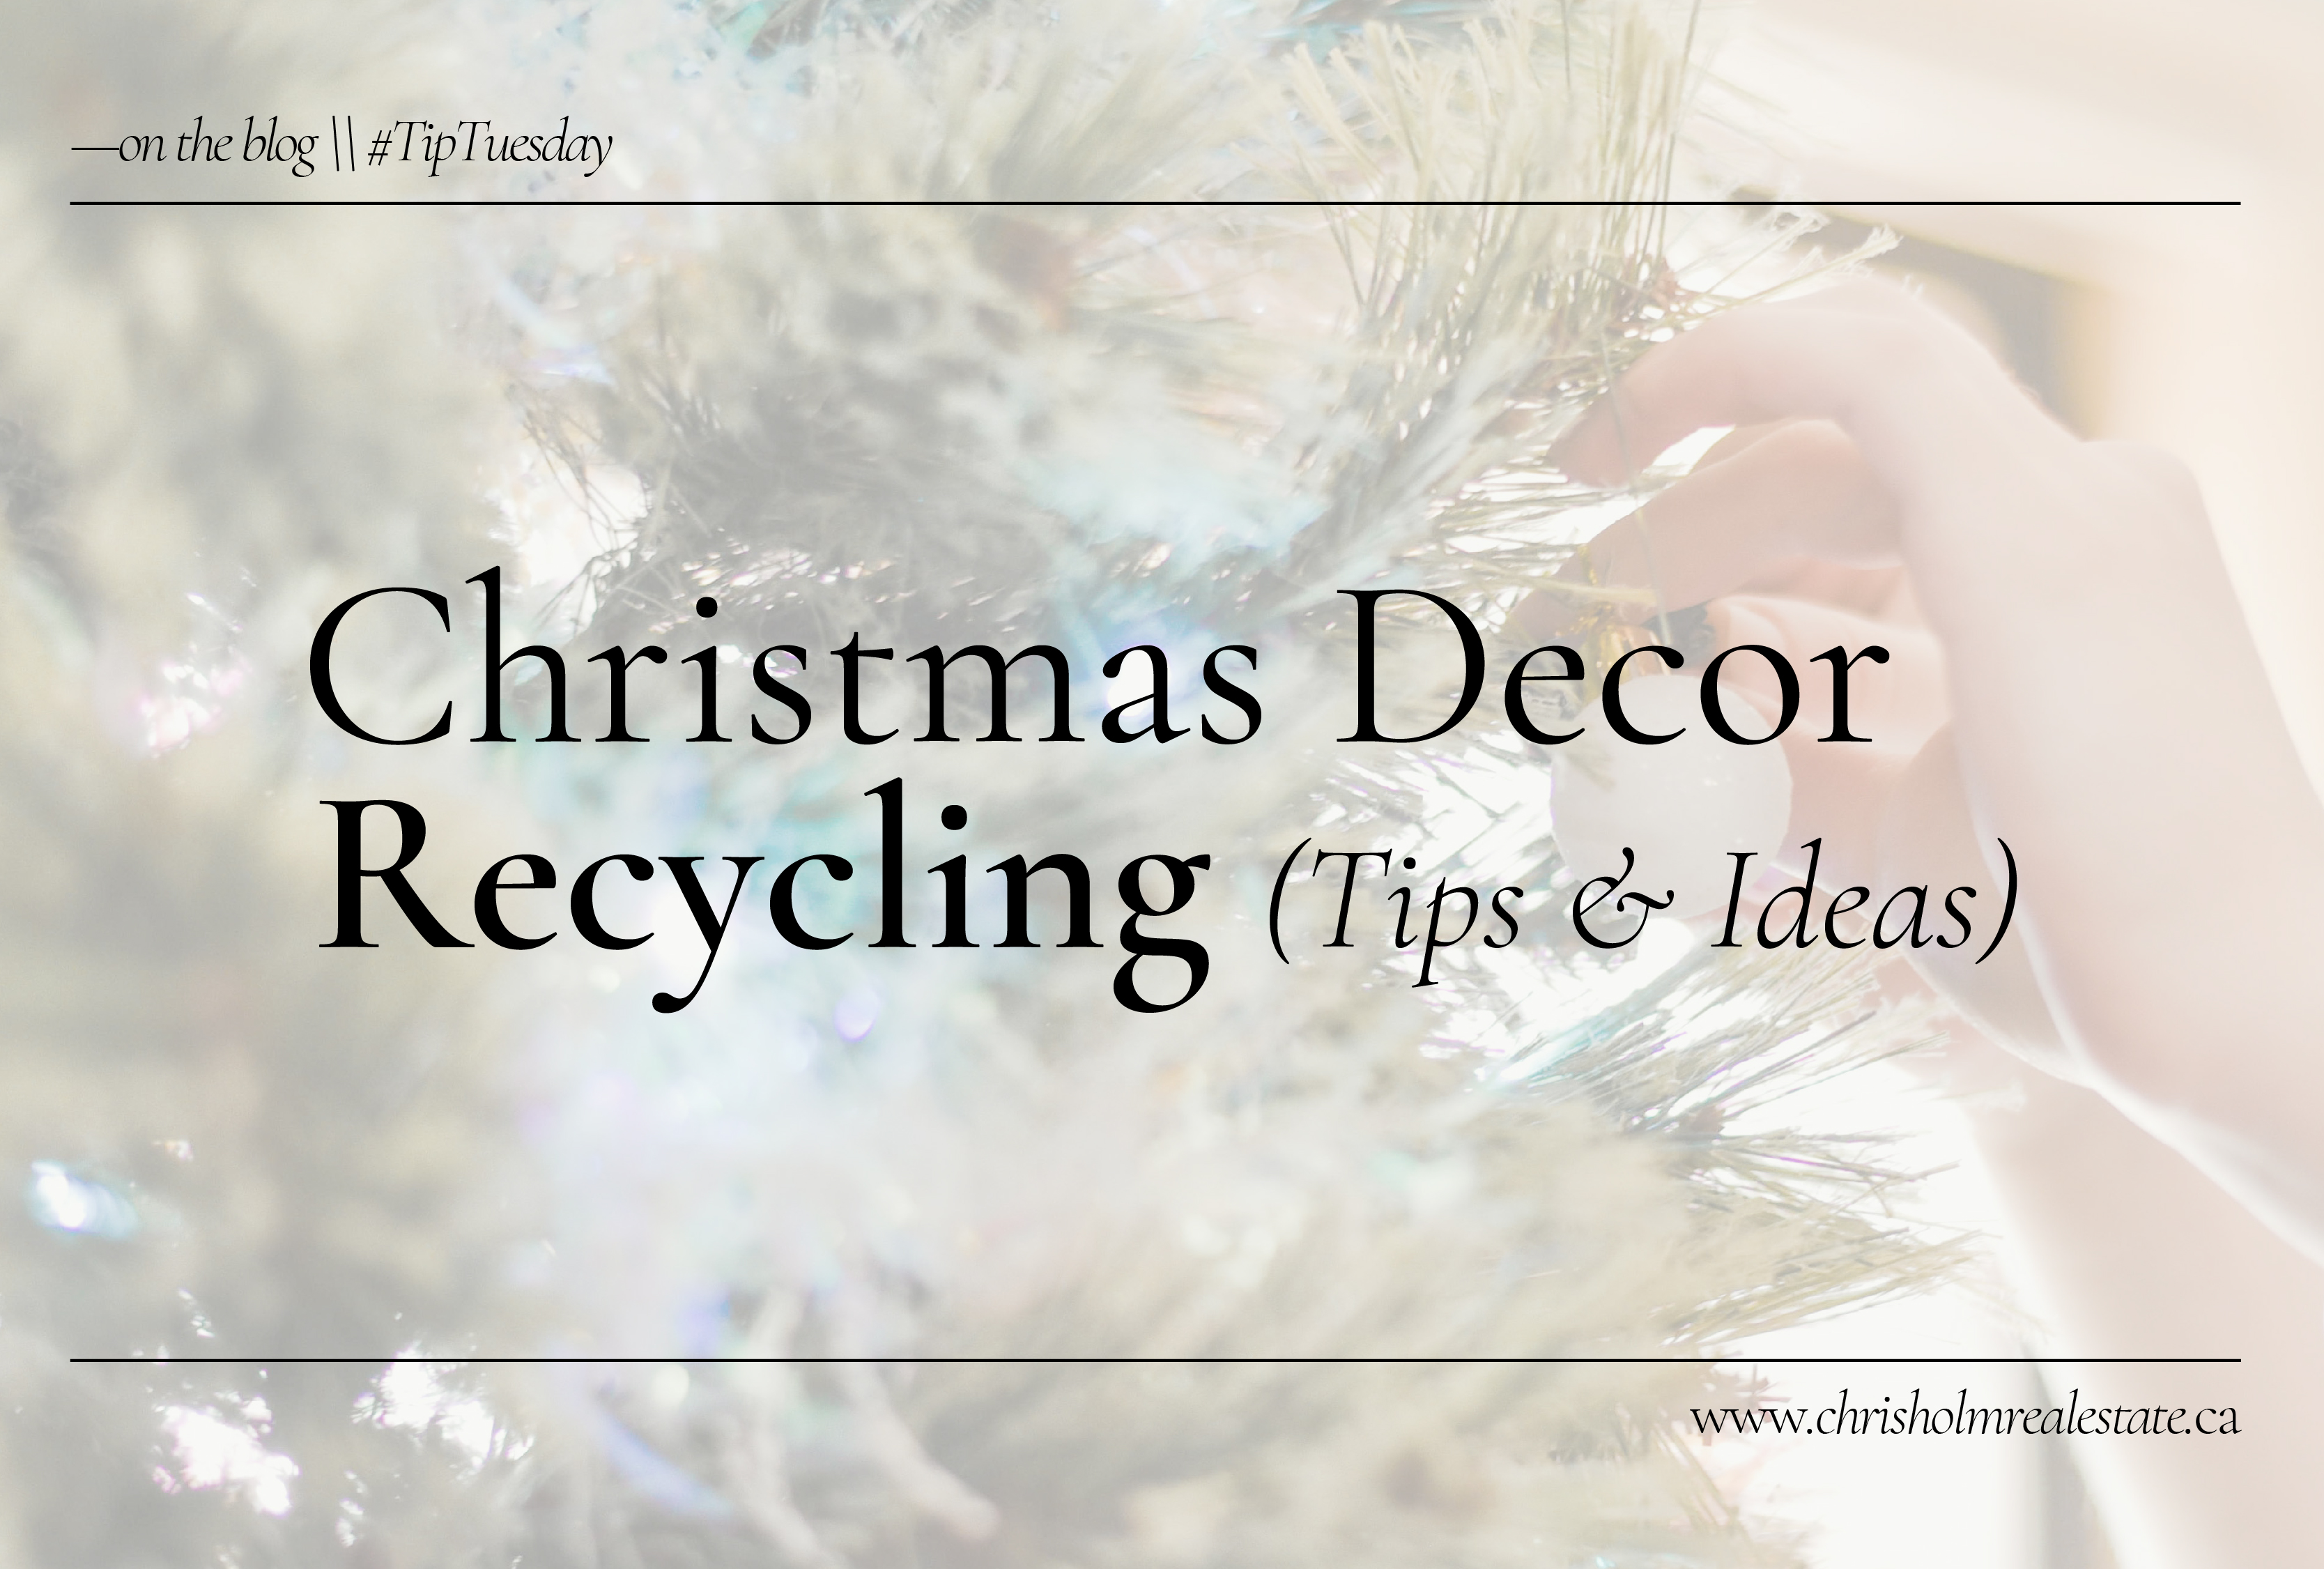 Christmas Decor Recycling Tips & Ideas